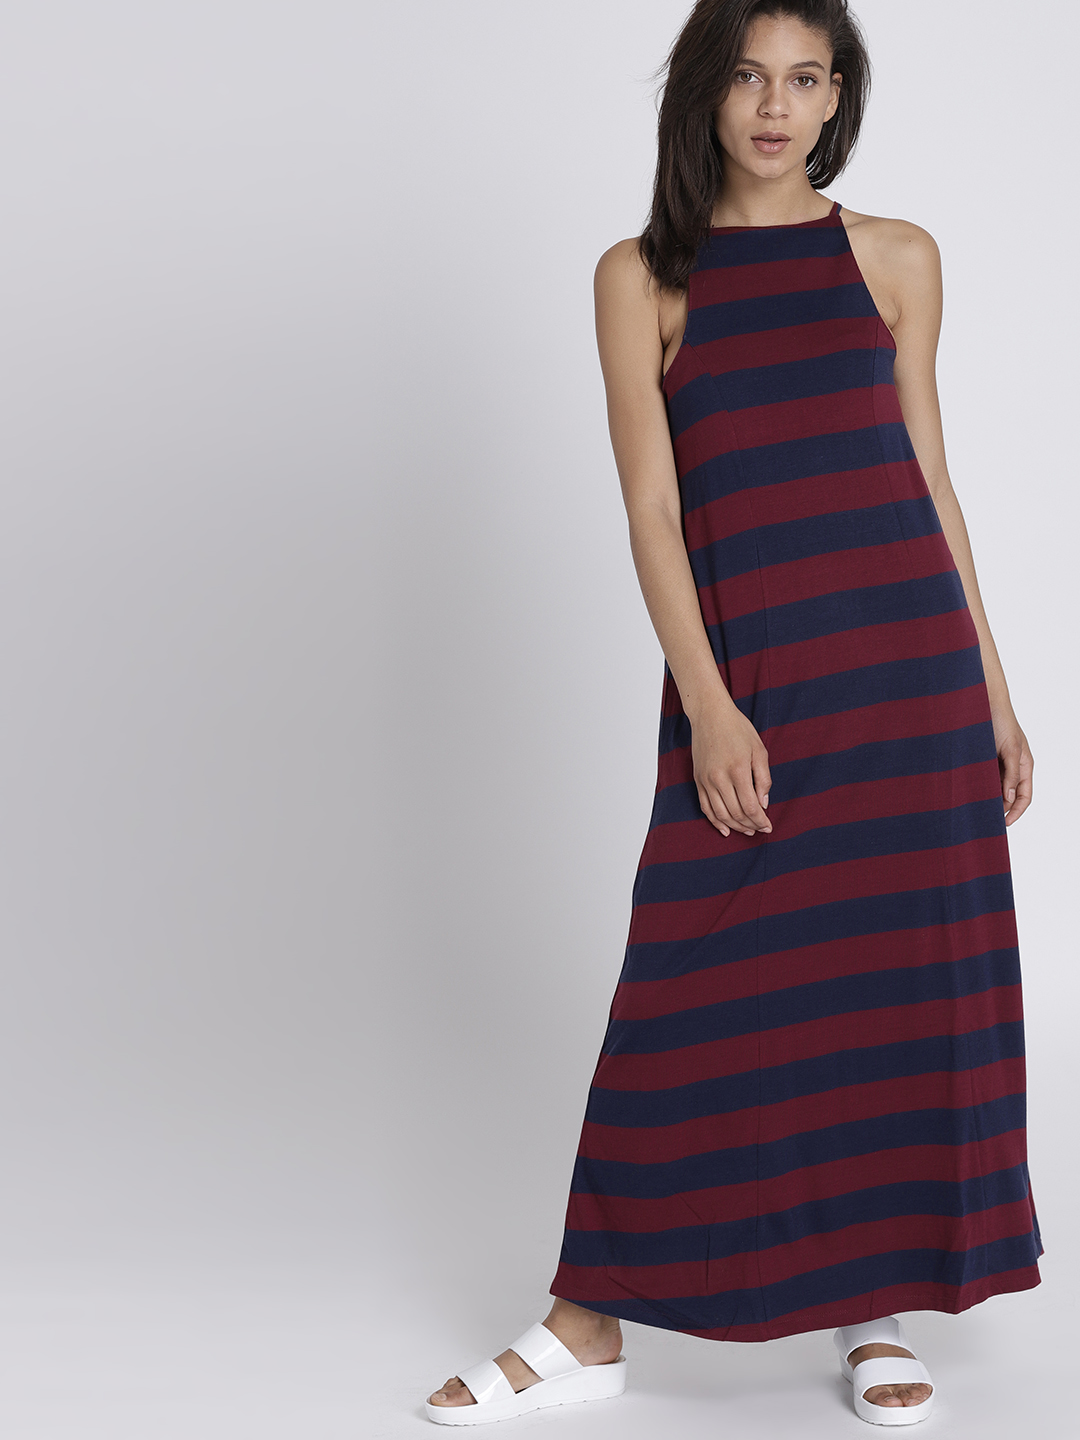 8837a43afe8 Buy Chemistry Women Maroon Striped Maxi Dress Online